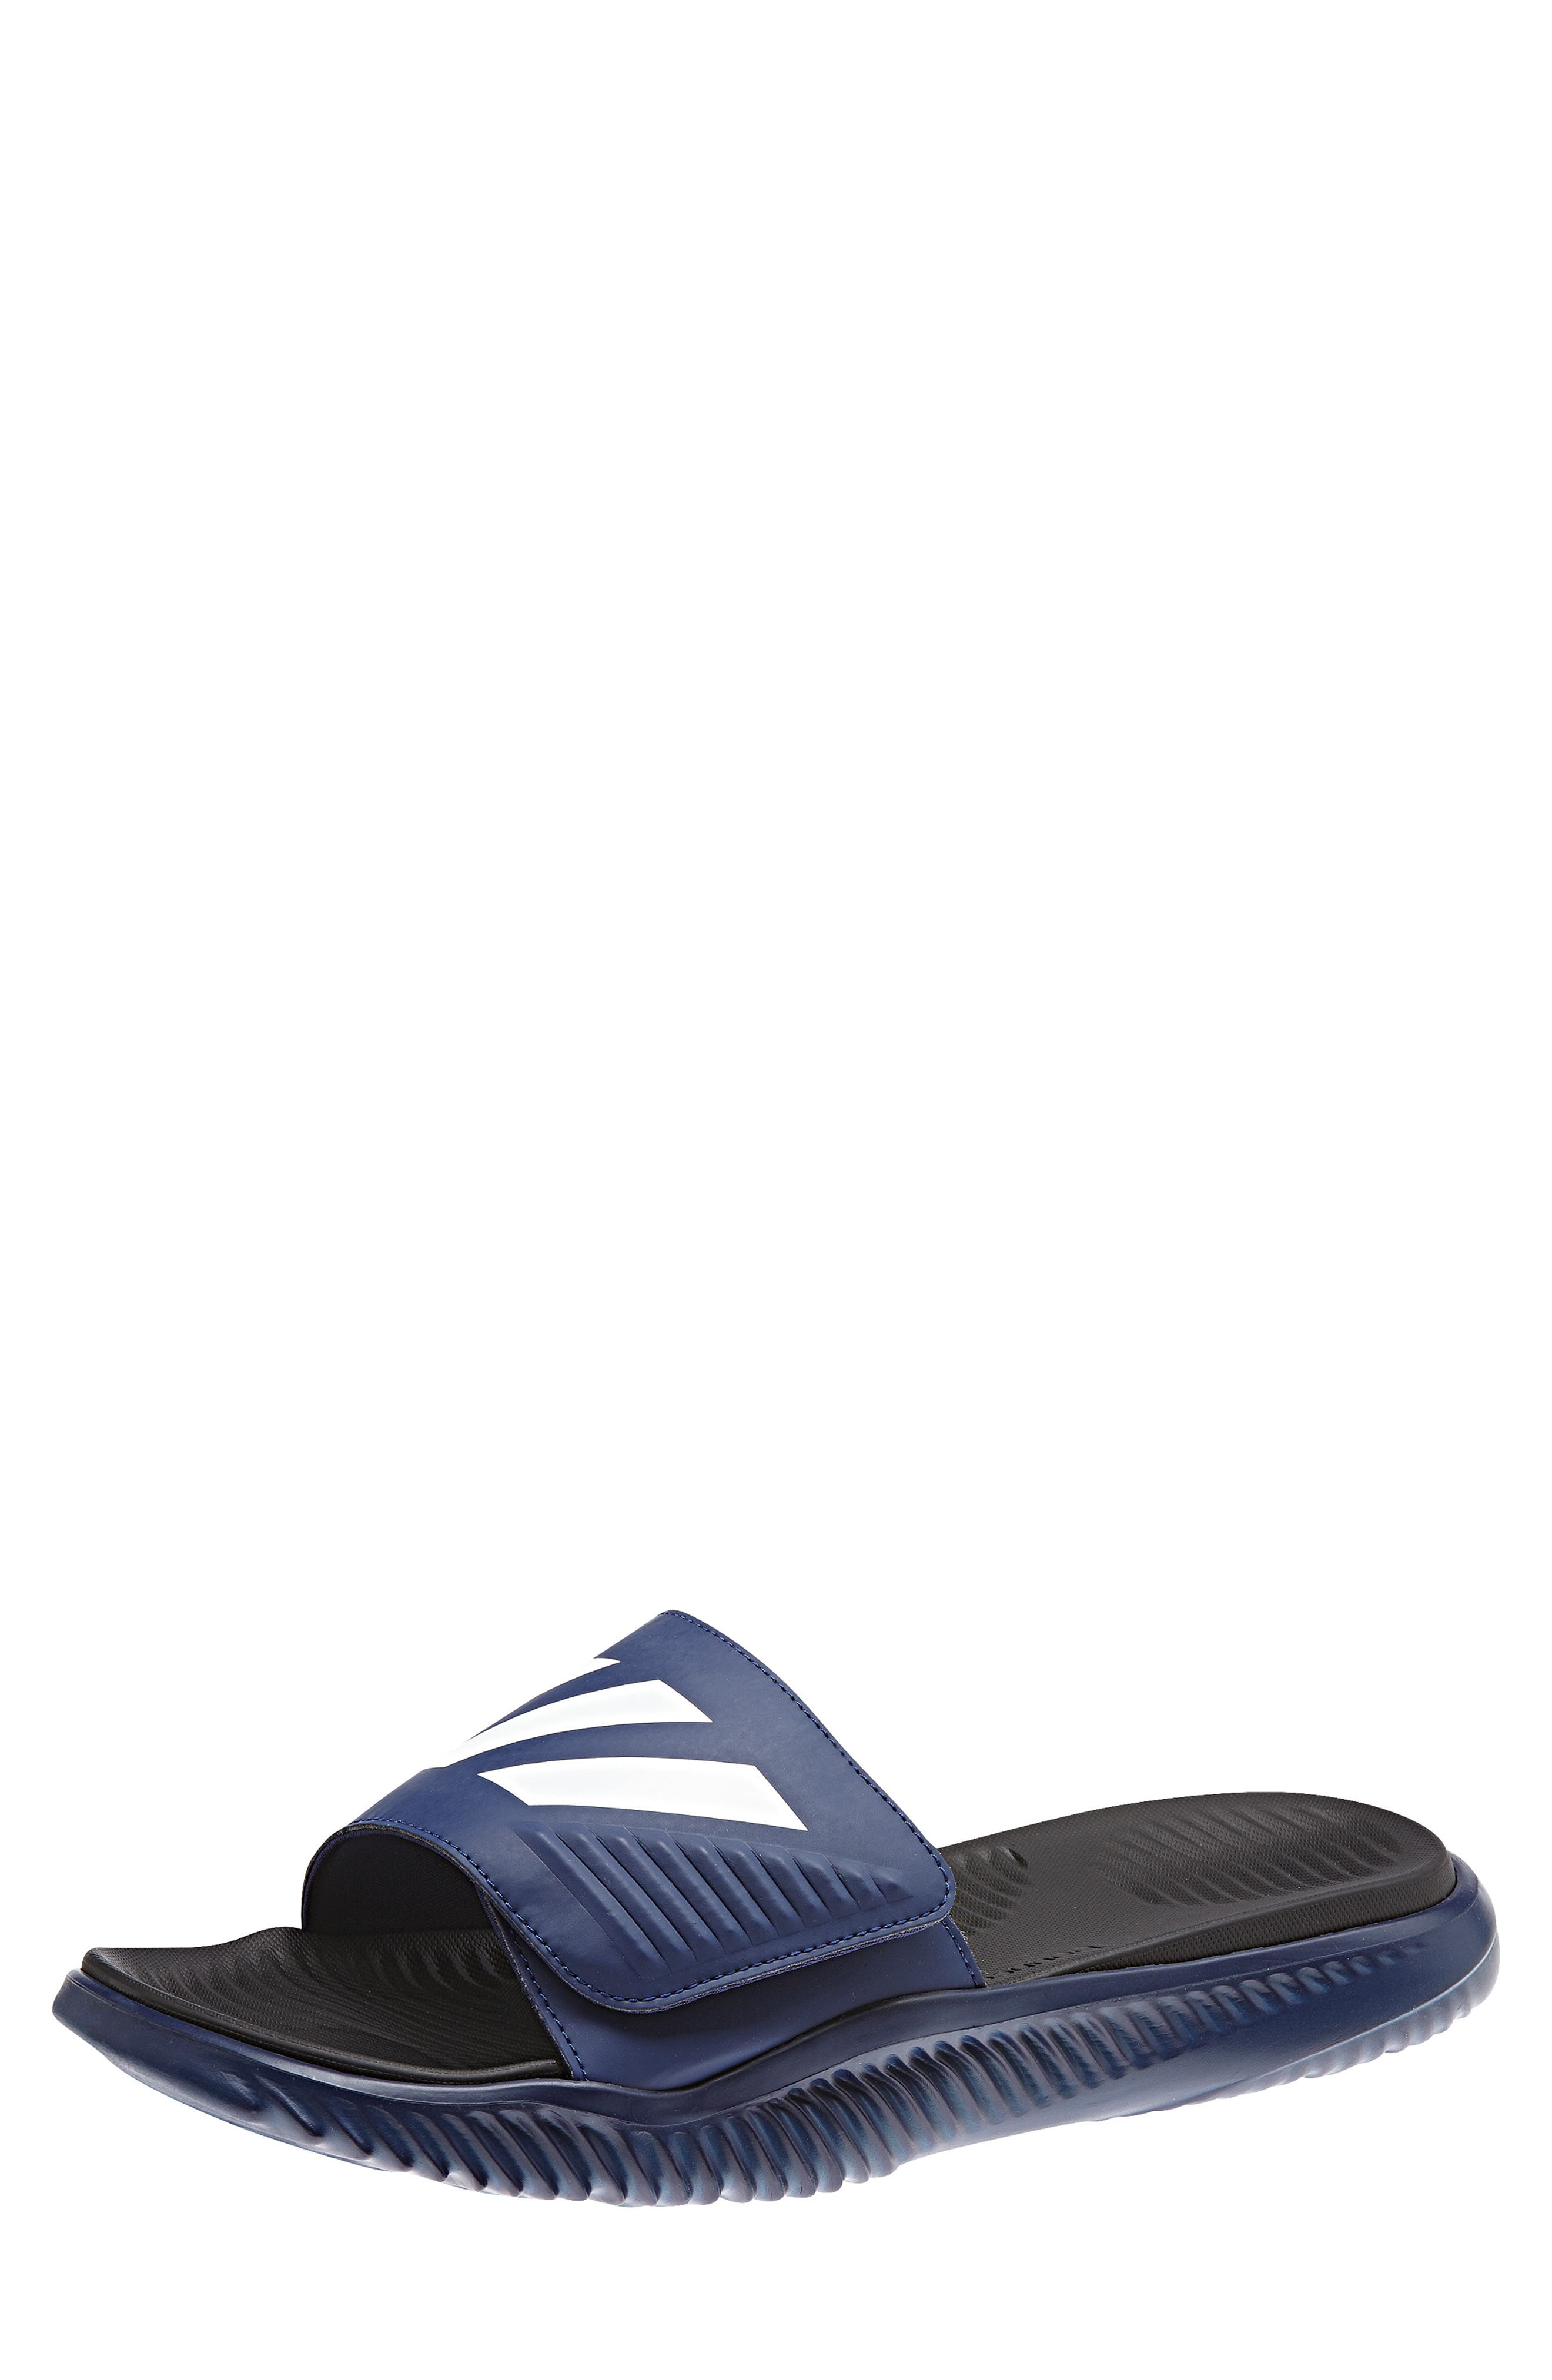 AlphaBounce Slide Sandal,                         Main,                         color, 415